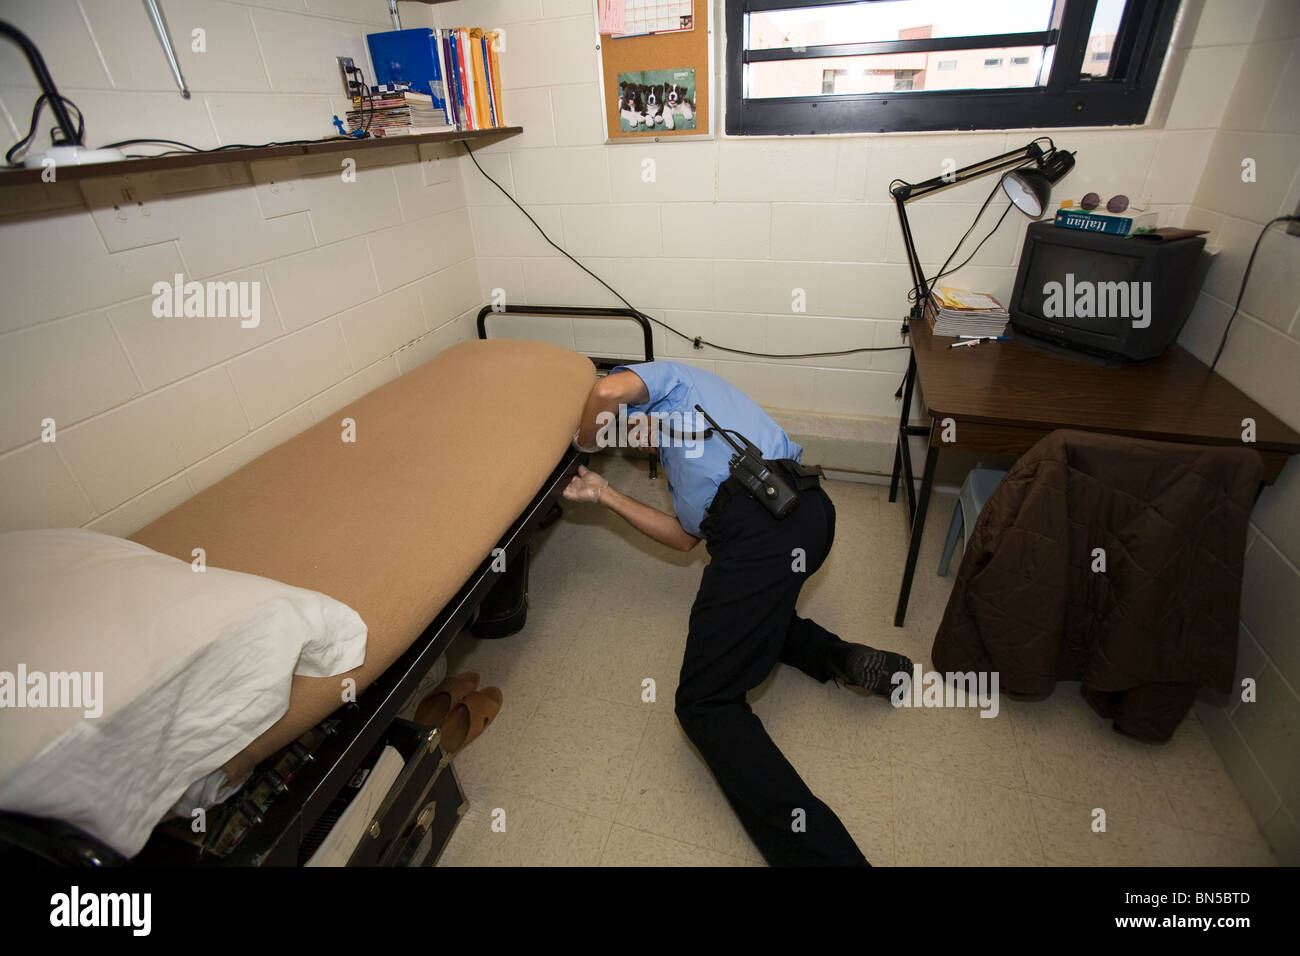 Prison guard, correctional officer, searching the cell of an